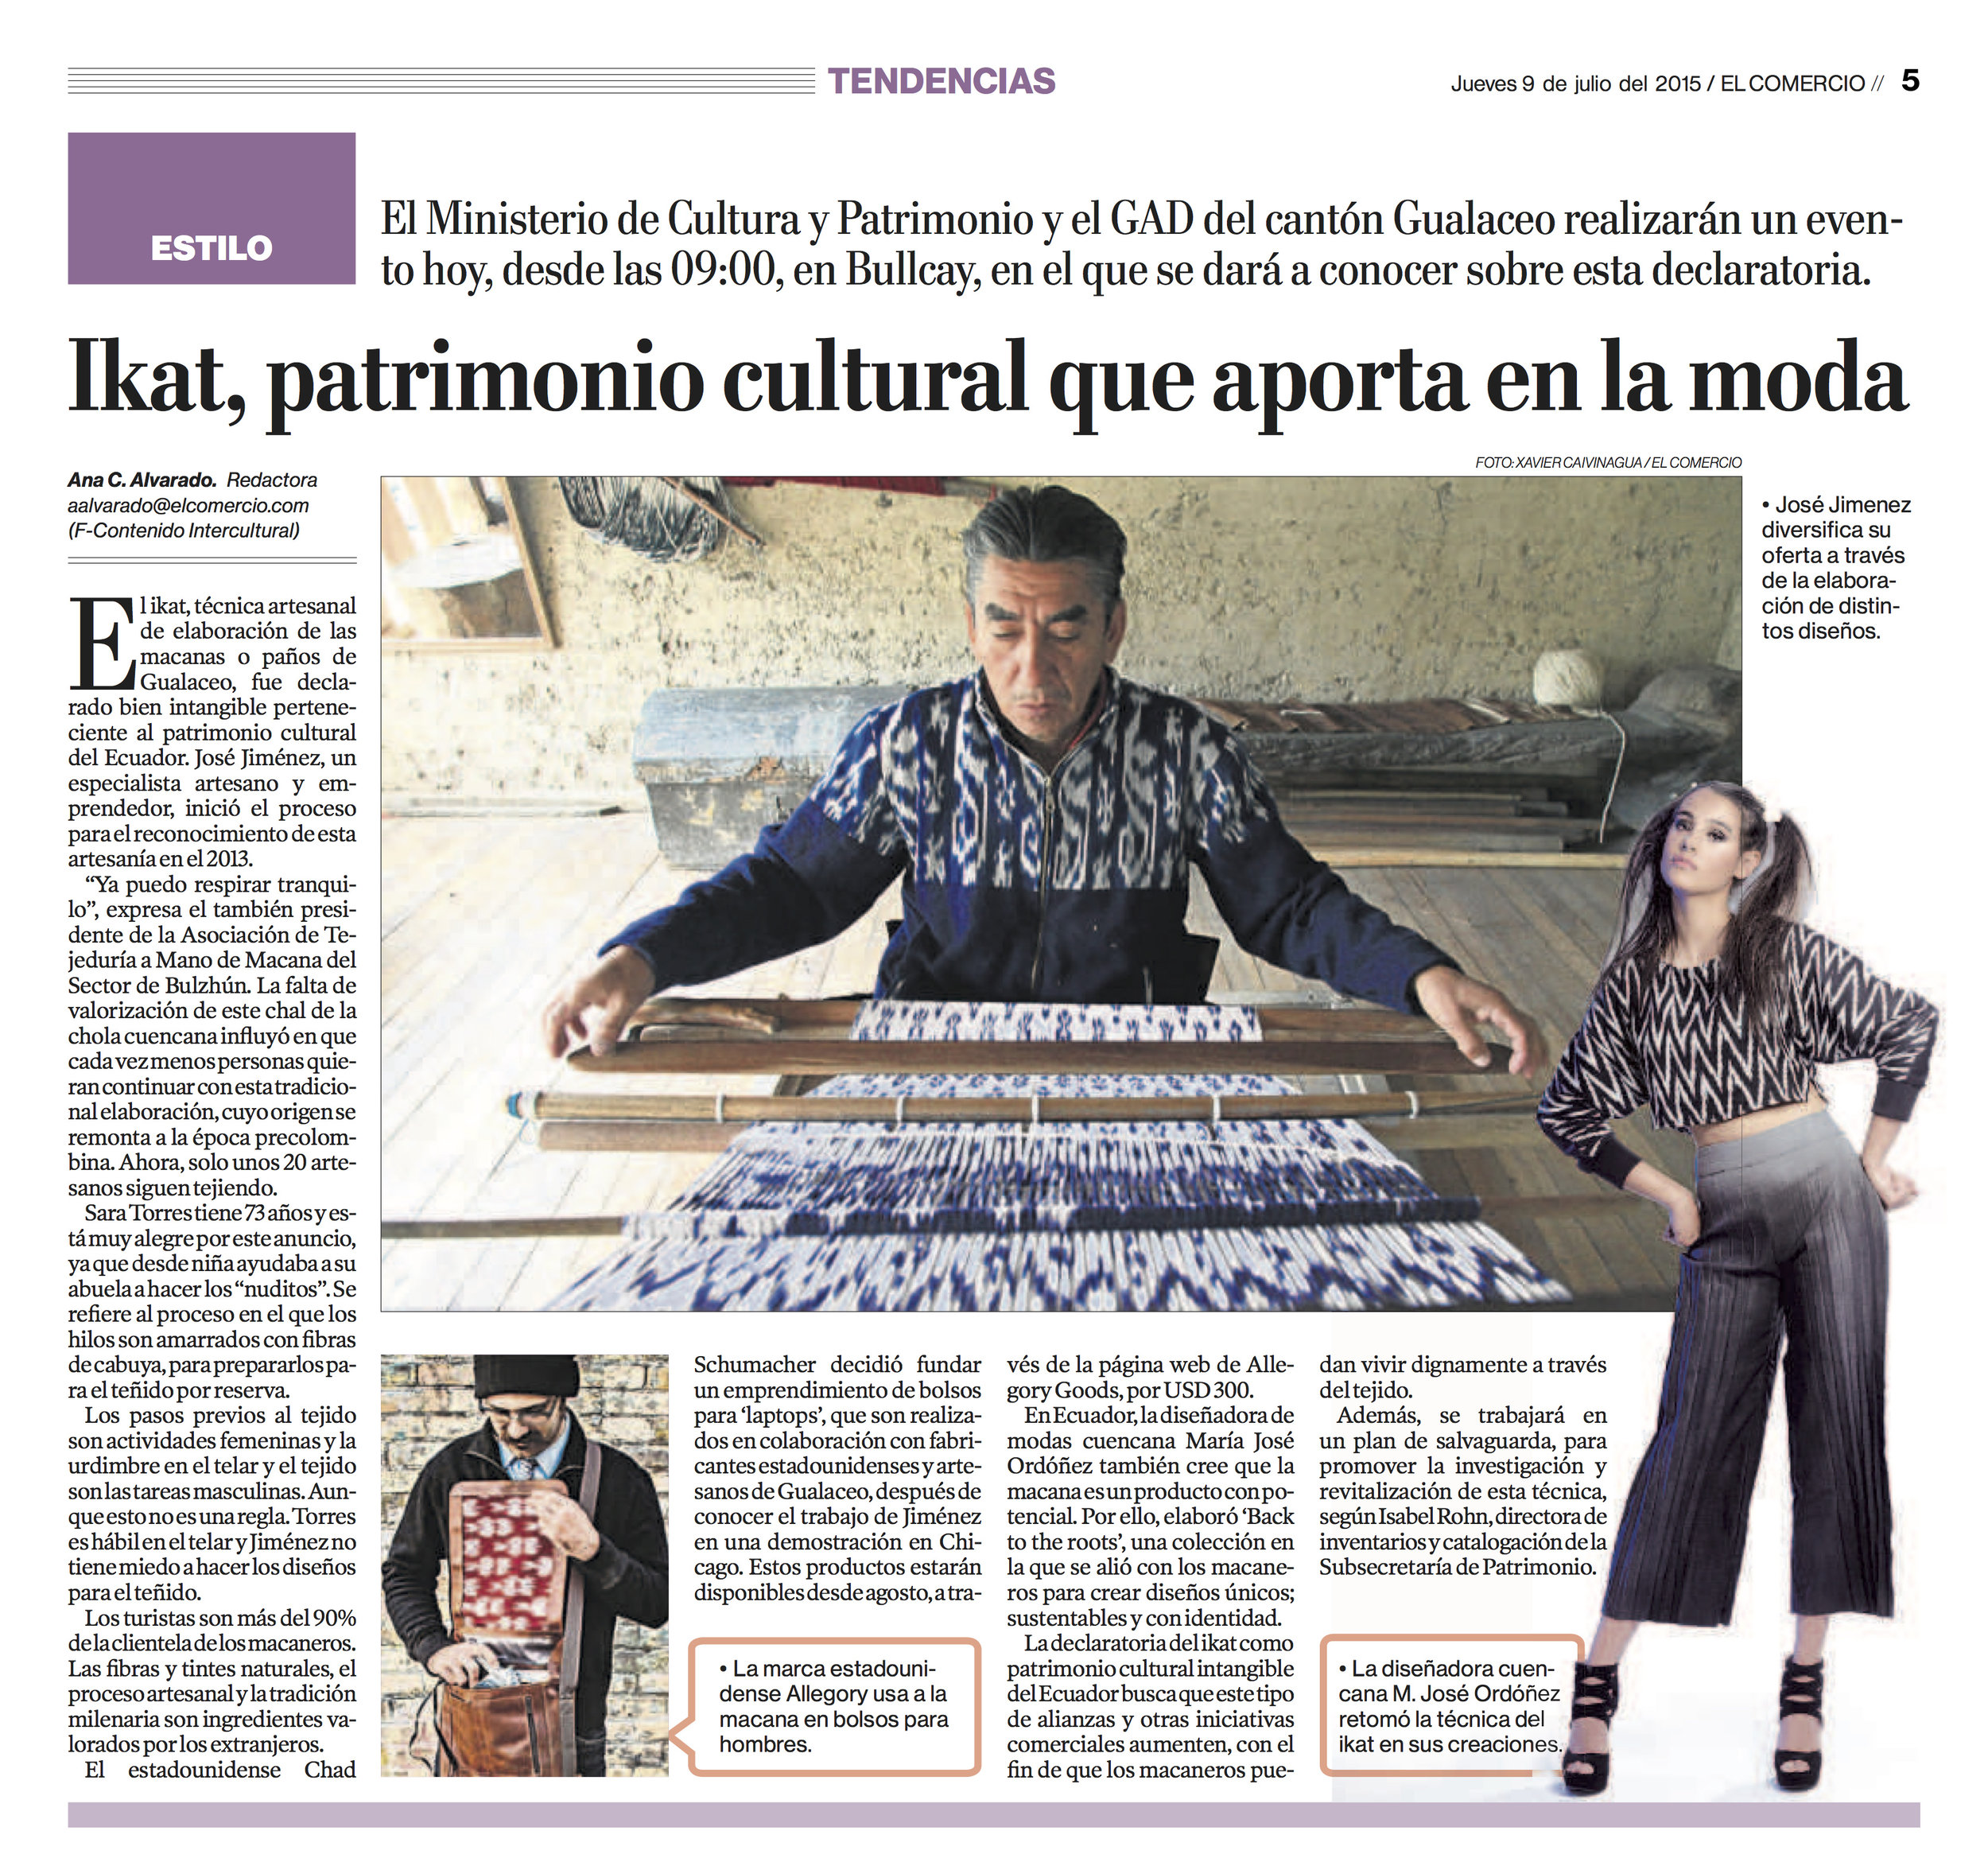 Ikat, Cultural Heritage that contributes to fashion  El Comercio, July 2015